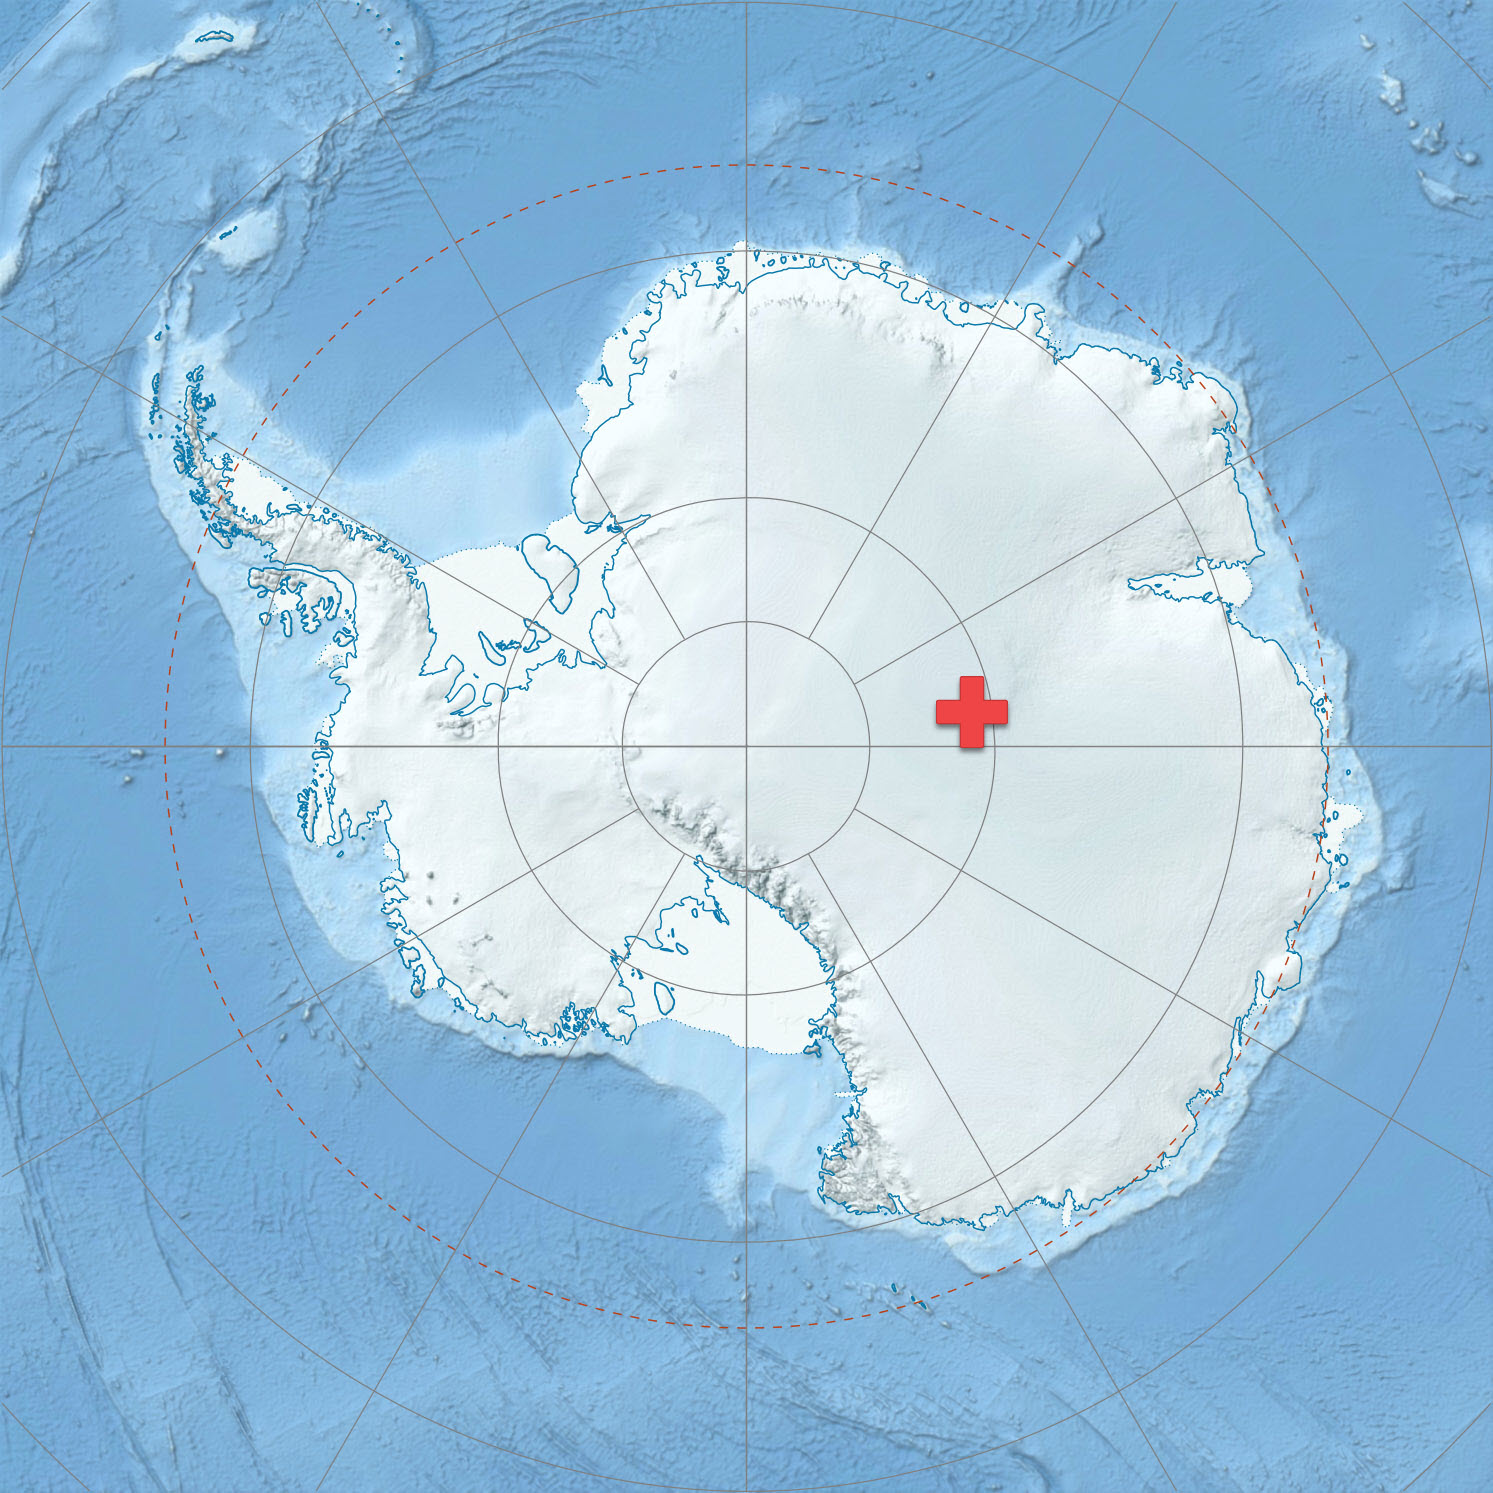 Location of Dome A in Antarctica